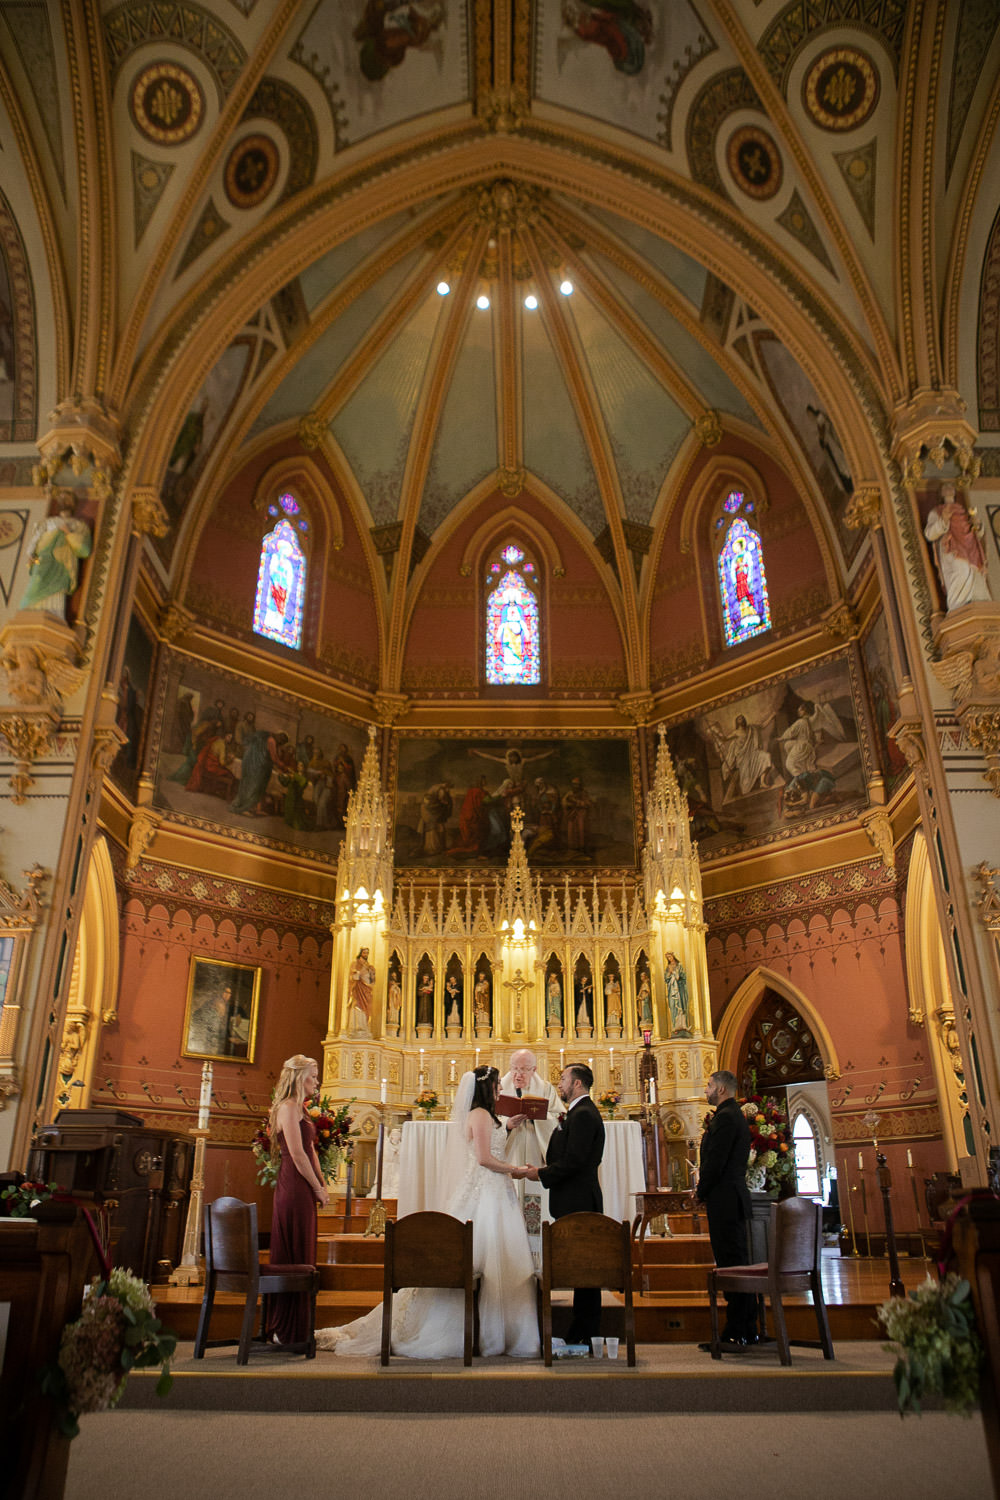 St John's Church Clinton MA, photo of full altar during a wedding